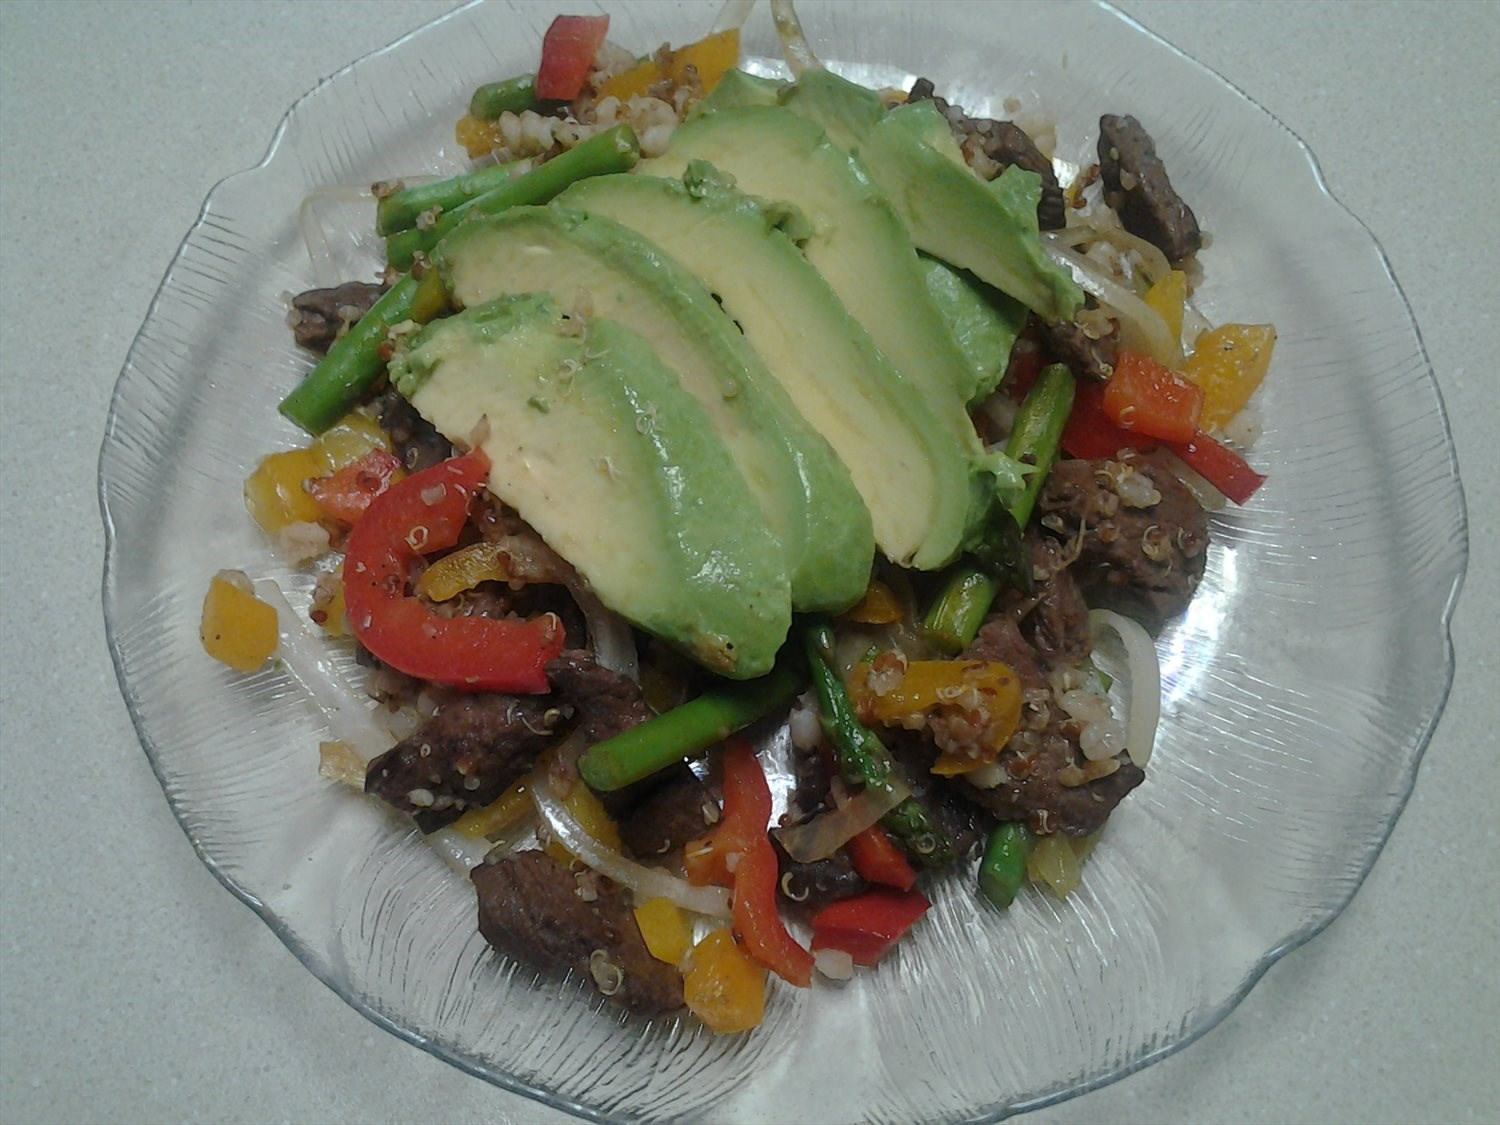 Spicy Venison Stir Fry Supper